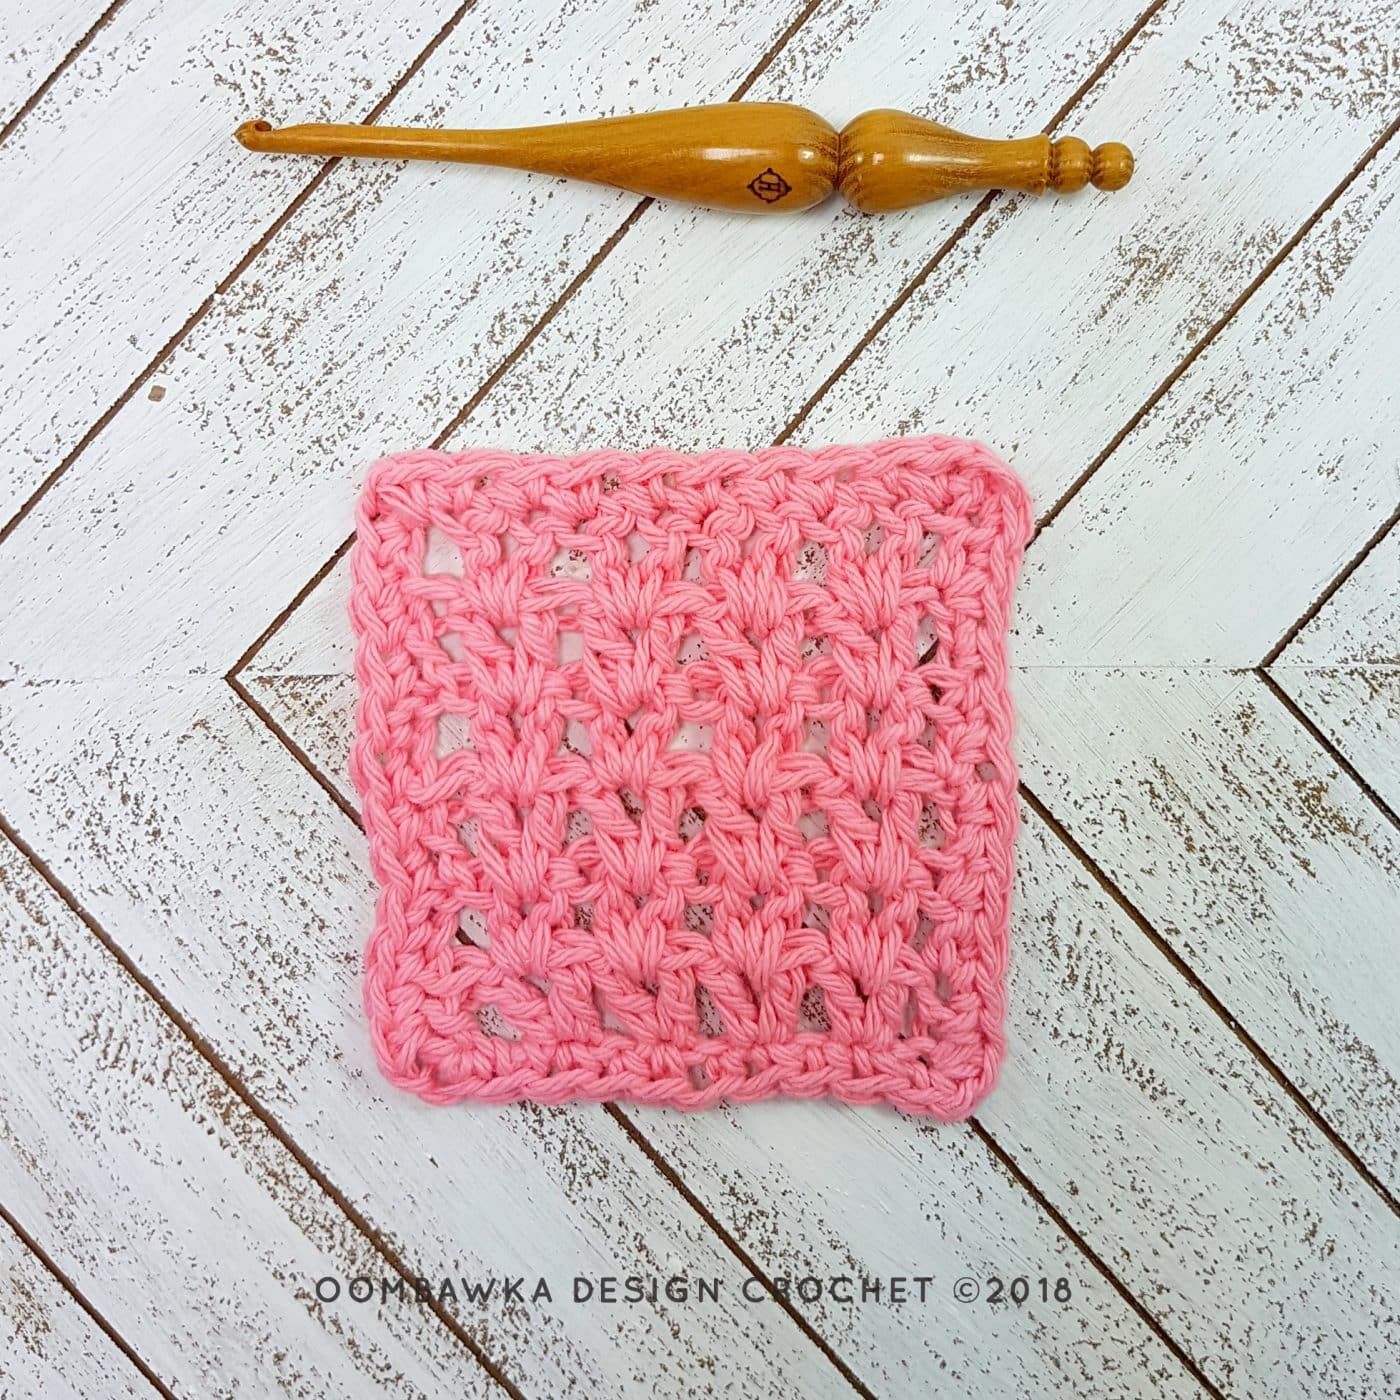 Crochet V-Stitch Dishcloth - Free Pattern and Tutorial